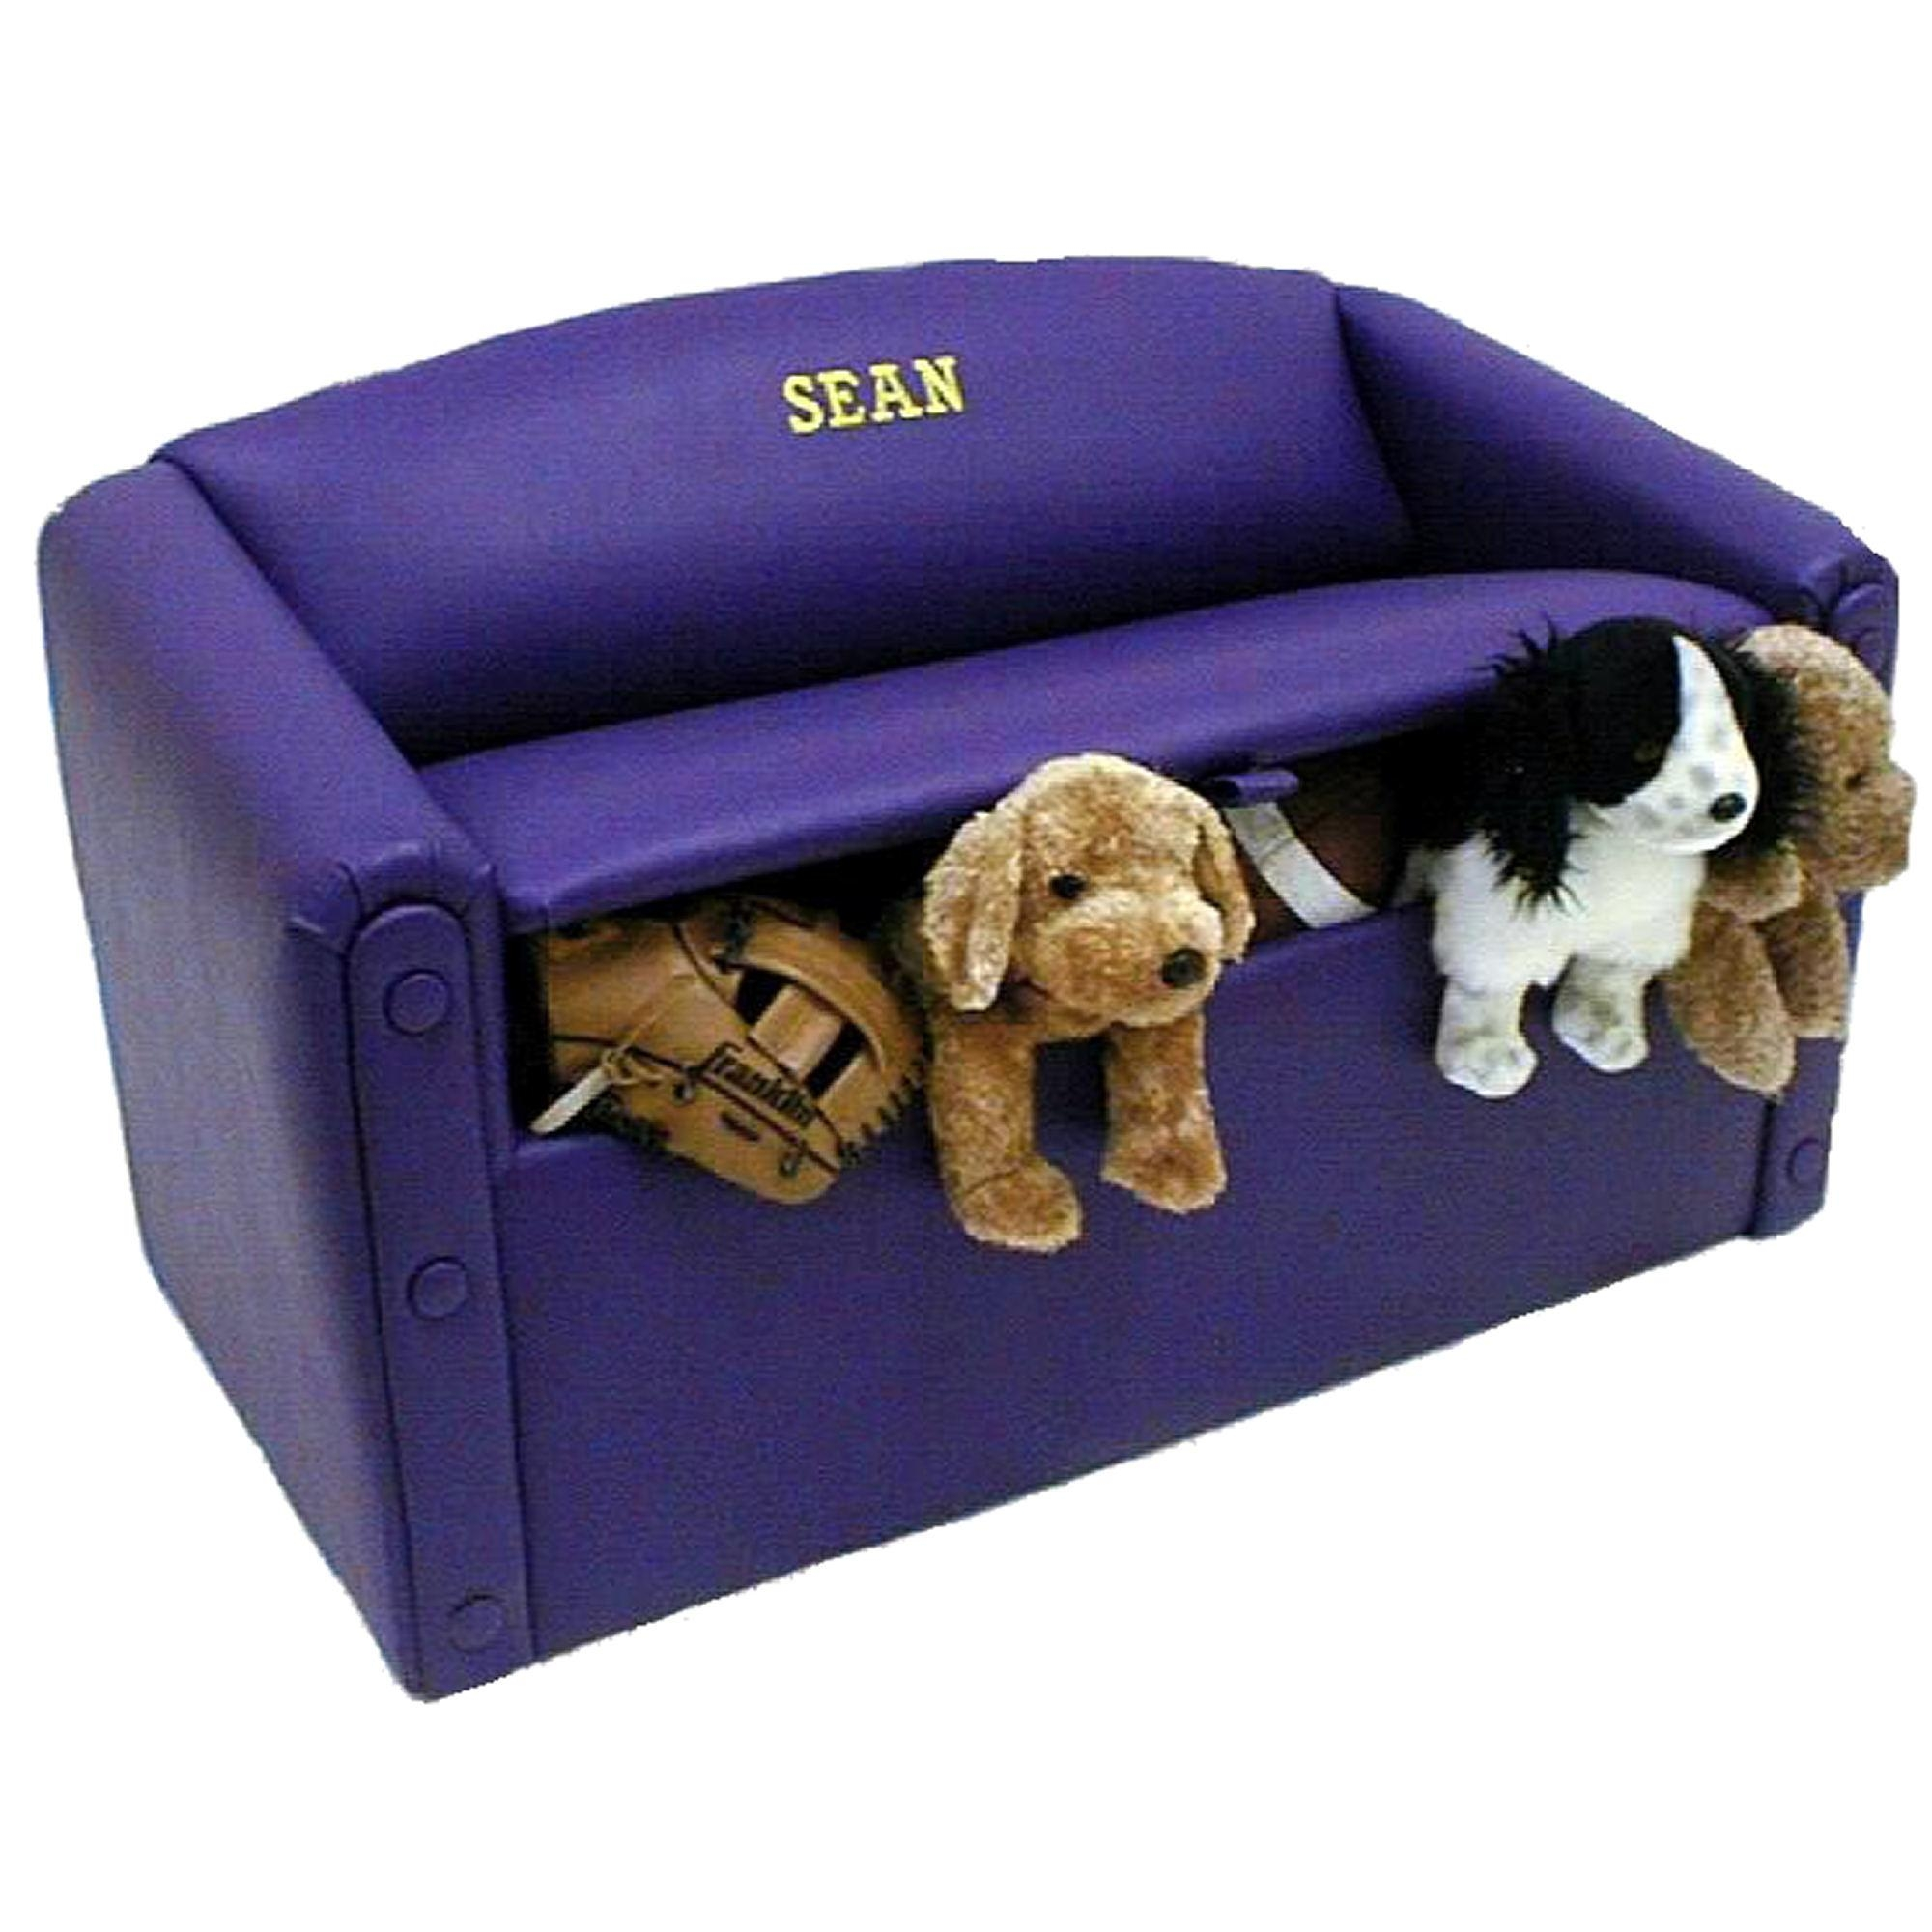 Personalized Kids Chairs & Sofas At Neat Stuff Gifts Regarding Personalized Kids Chairs And Sofas (Image 7 of 20)